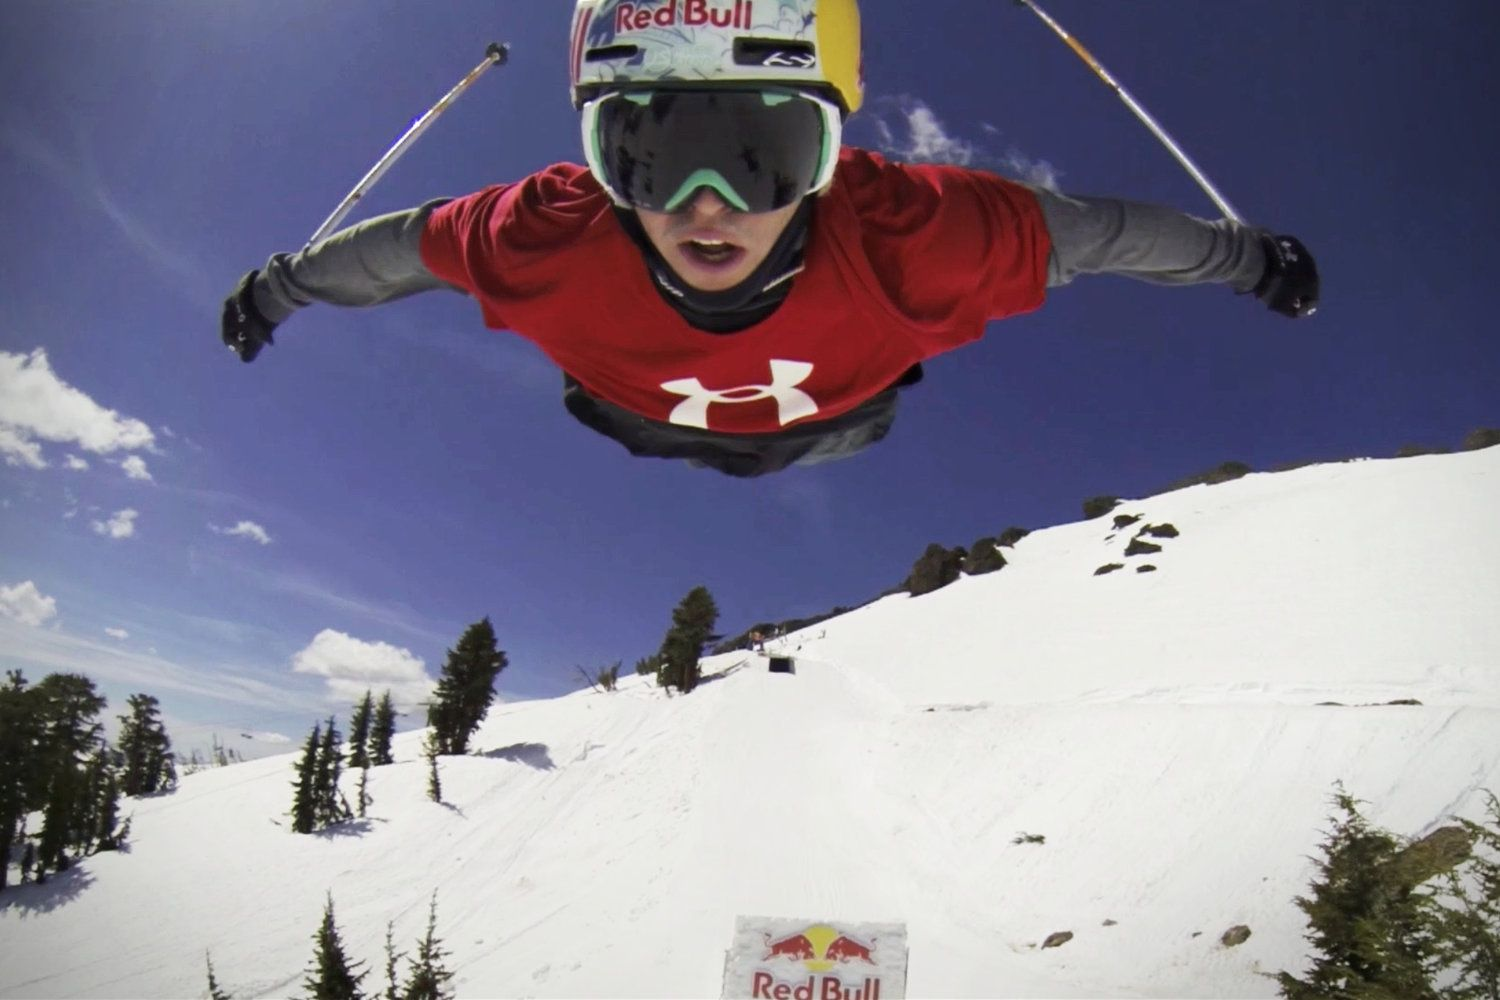 Музыка и видеоролик из рекламы GoPro - Art Of The Double Cork (Bobby Brown)